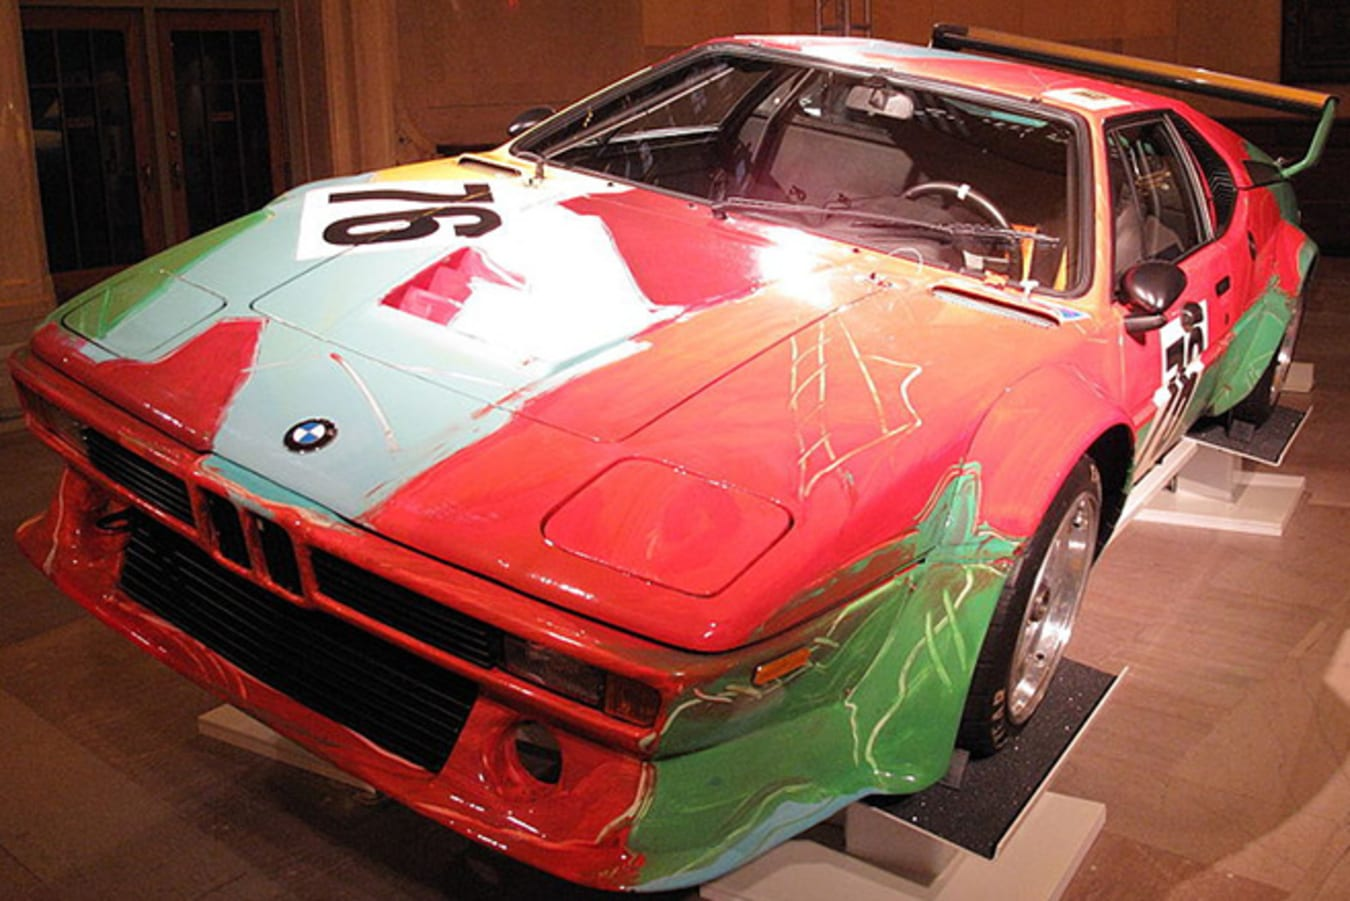 1979 BMW M1 Group 4 by Andy Warhol